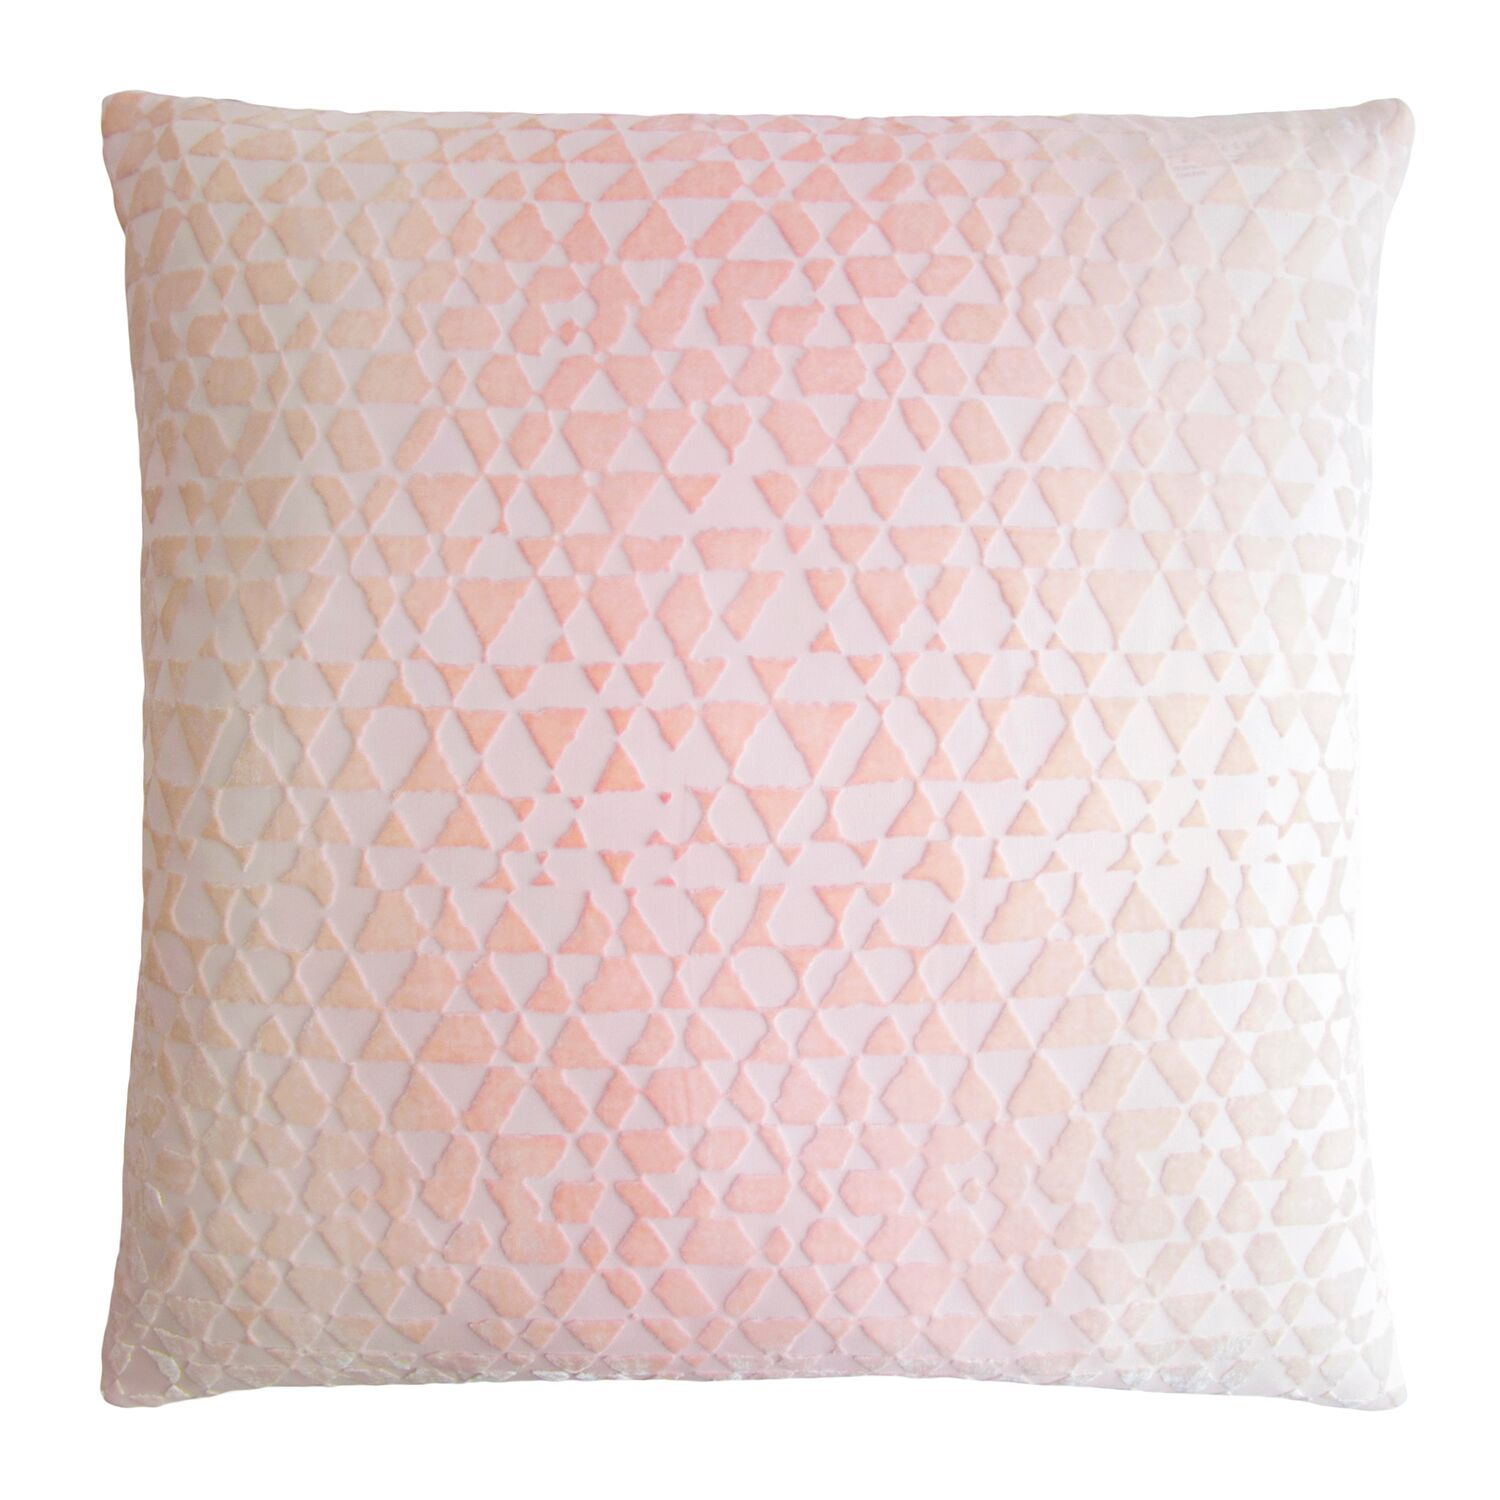 Triangles Blush Velvet Pillows by Kevin O'Brien Studio | Fig Linens